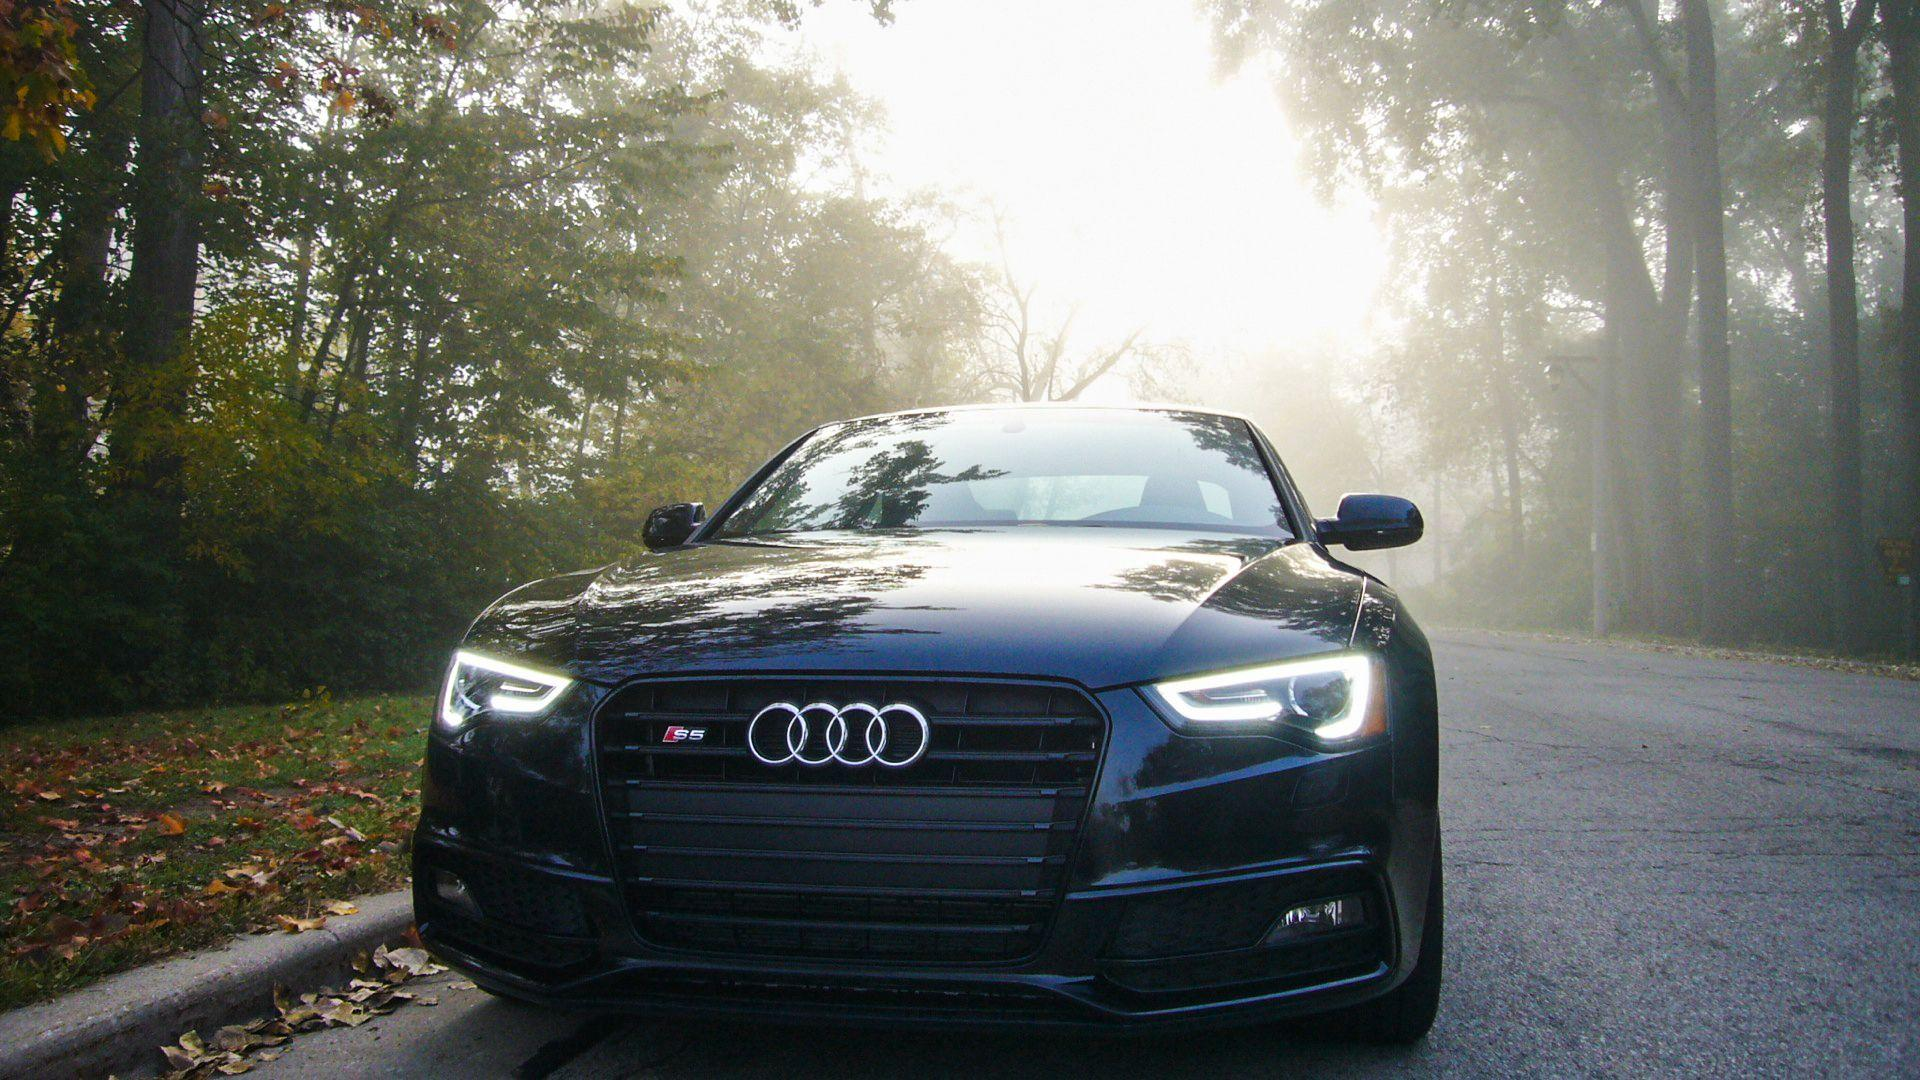 Audi S4 Wallpapers 09